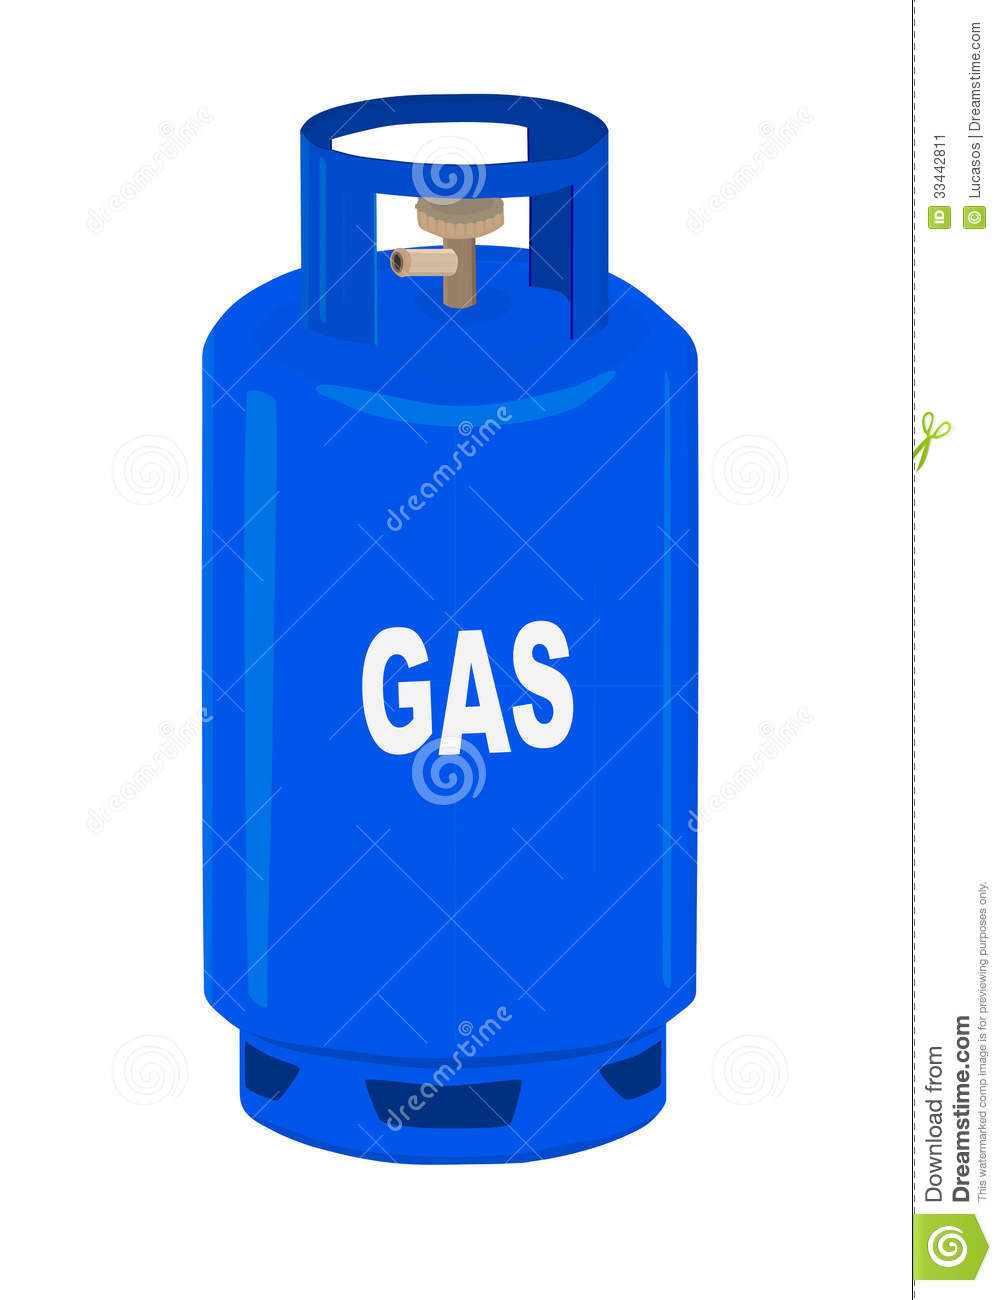 Propane gas cylinder. stock vector. Image of flame ...